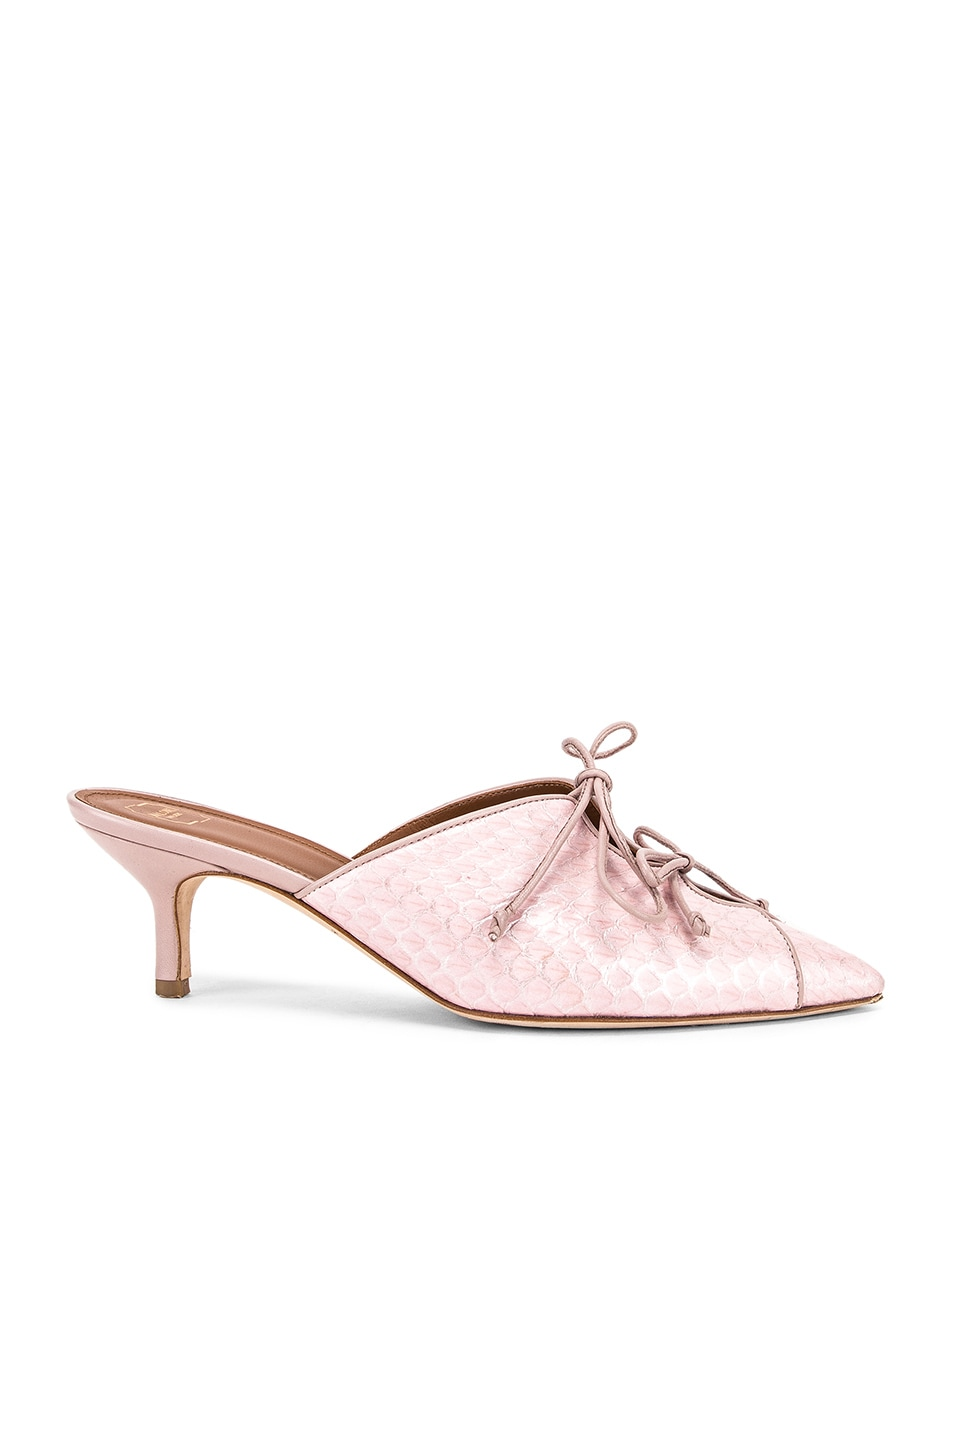 Image 1 of Malone Souliers Victoria MS 45 Heel in Pink & Dusty Pink